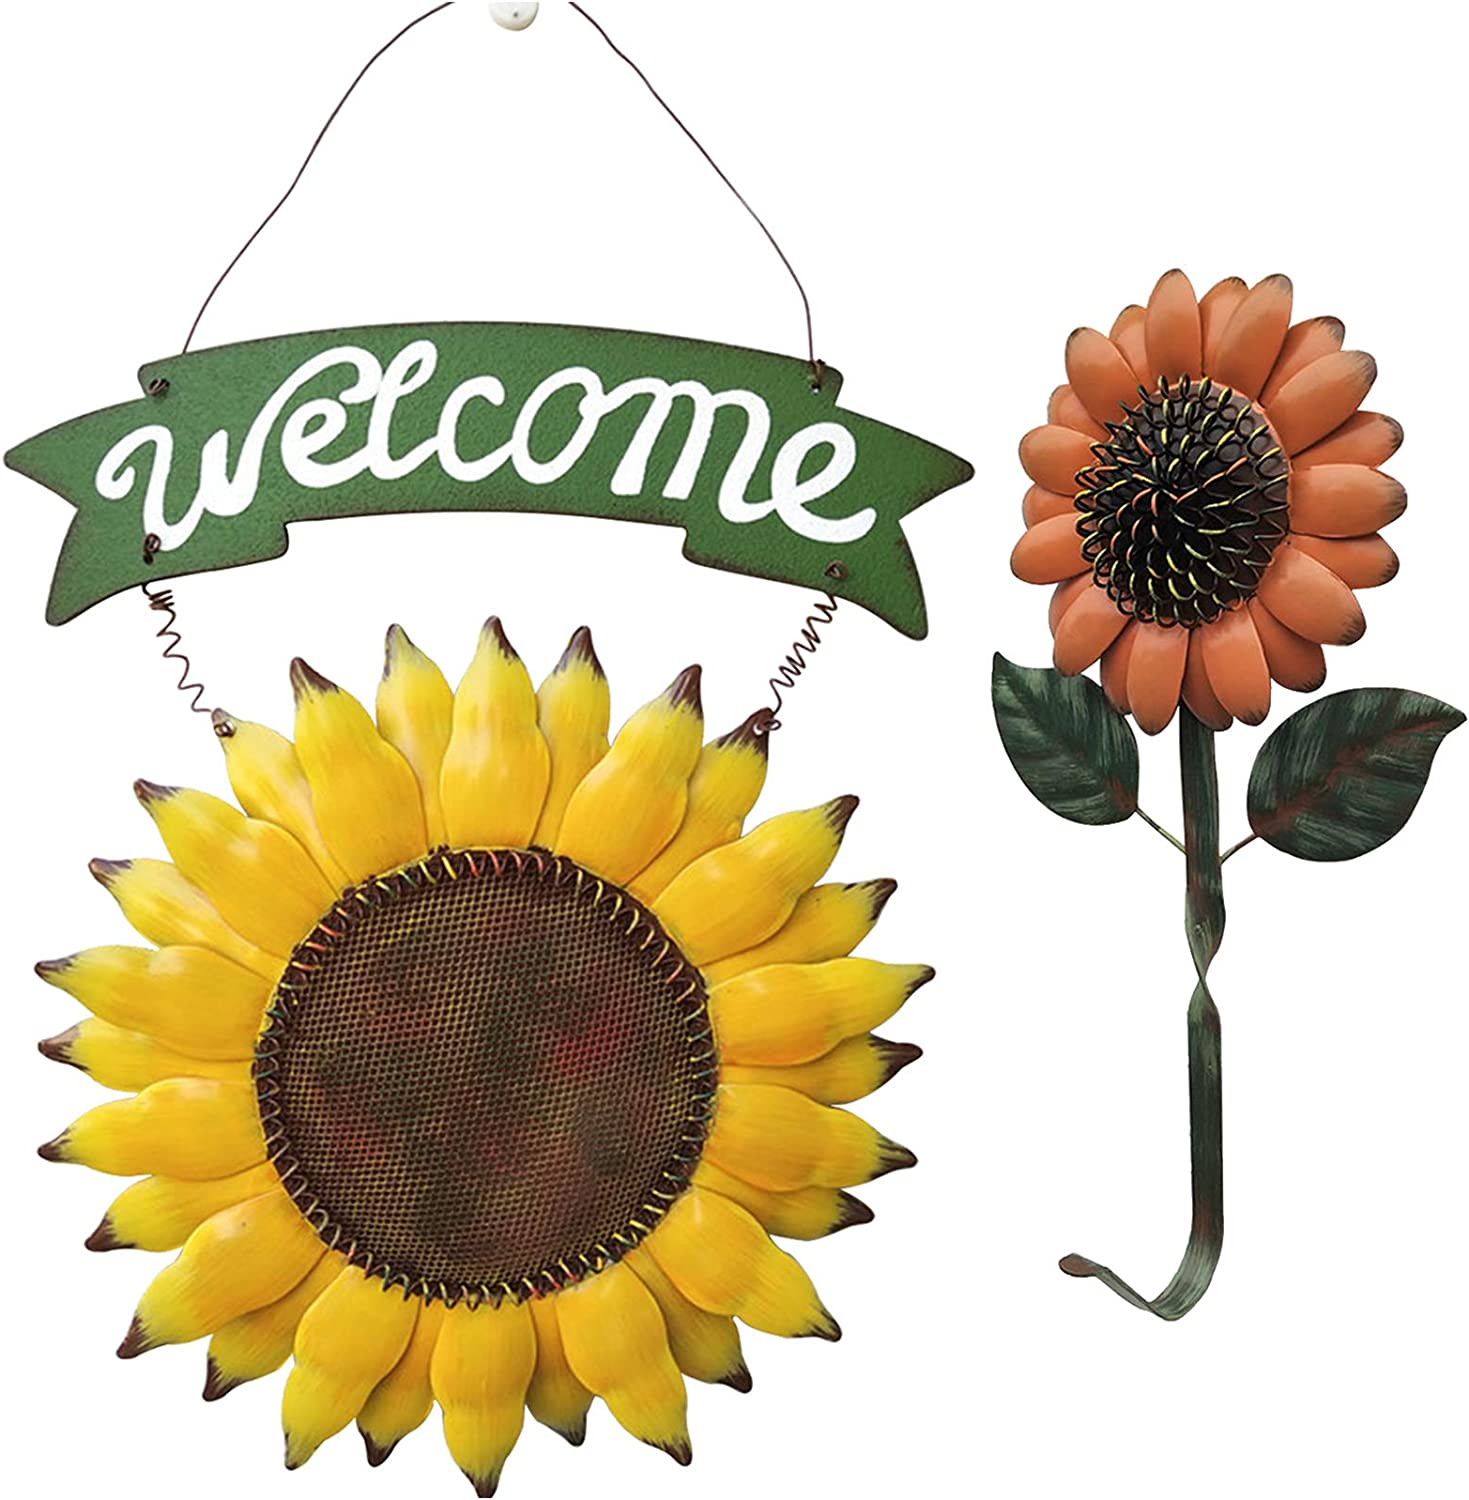 TISOSO Farmhouse Sunflower Welcome Sign with One Sunflower Hook Hanging Sign Metal Yard Art Country Home Wall for Outdoor Garden Patio Porch Lawn Front Door Decorative (Set of 2)